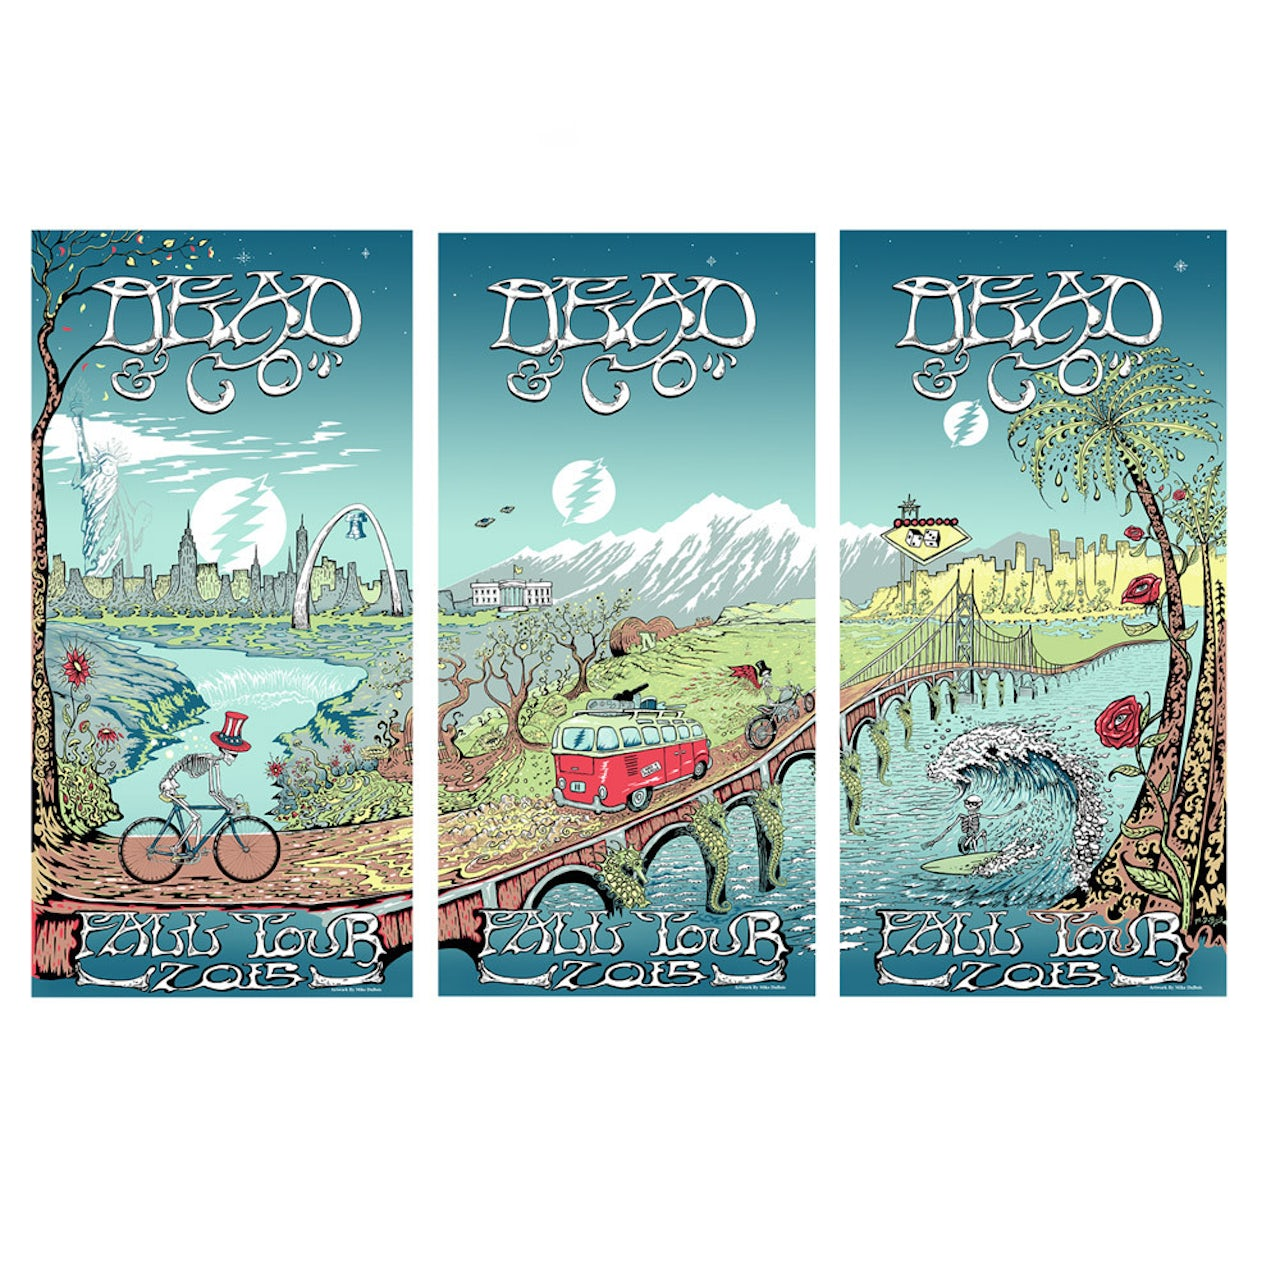 Limited Qty Available! Dead & Company Across America 2015 Poster